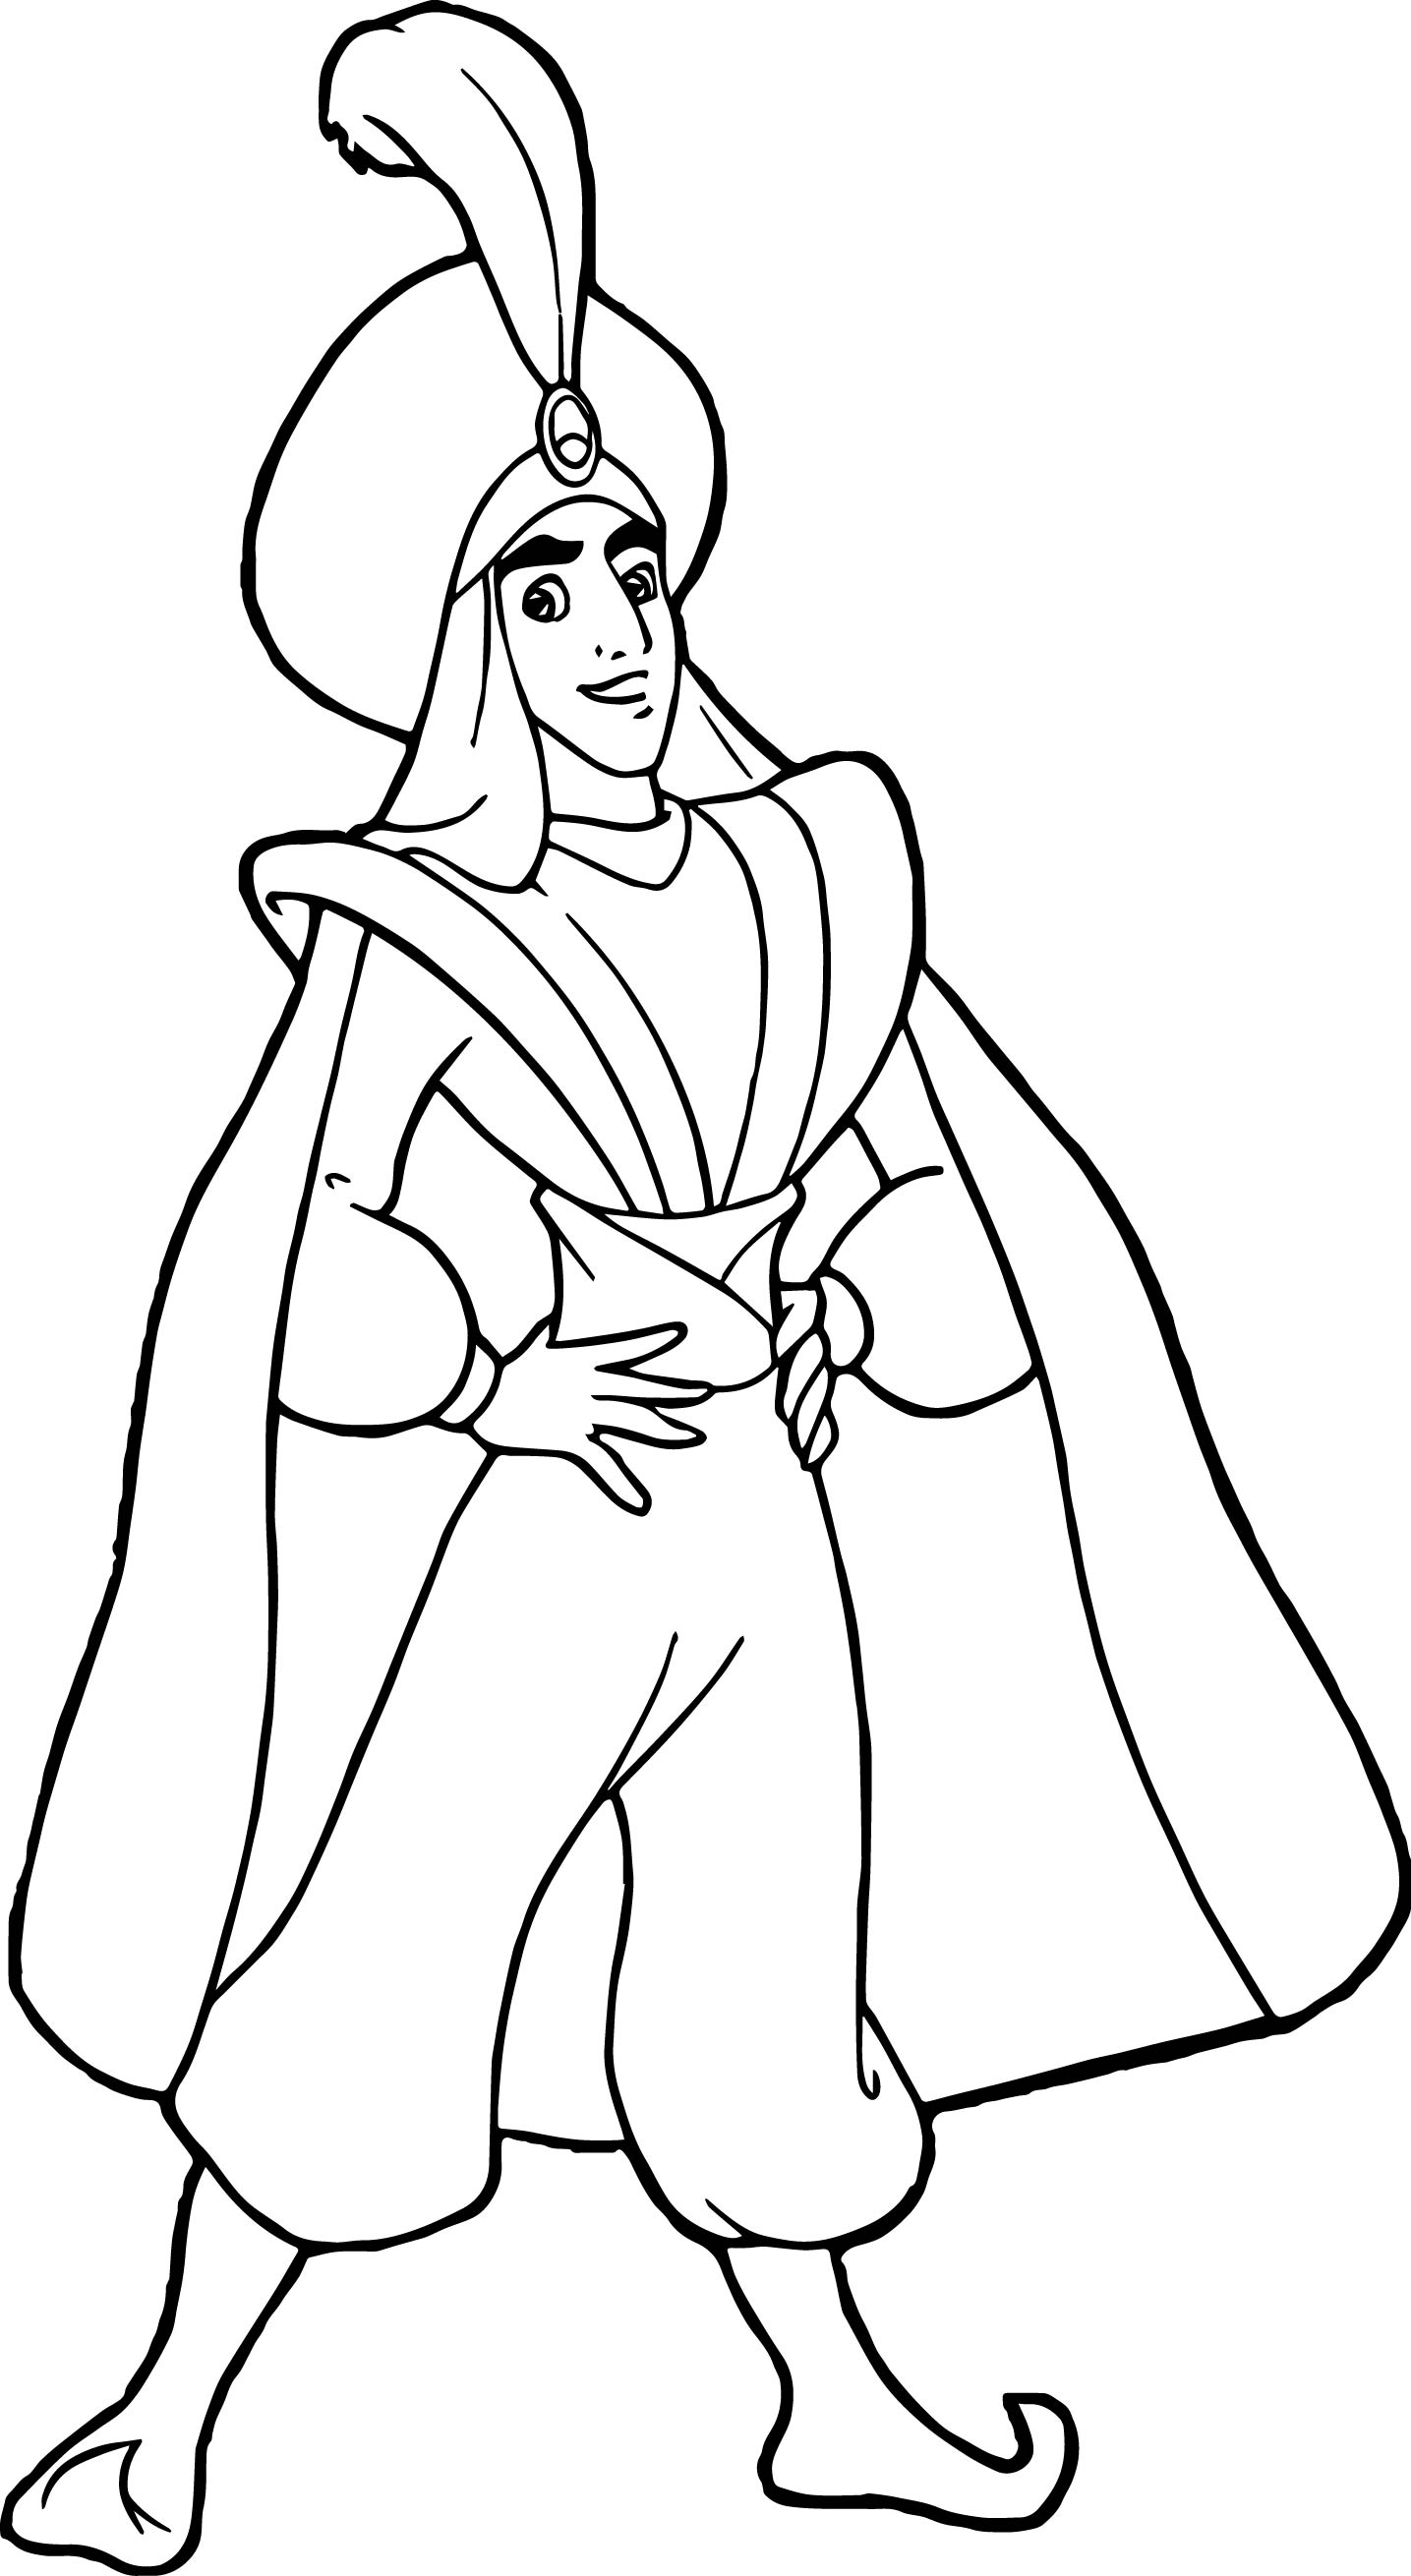 prince ali aladdin coloring page - Aladdin Coloring Pages